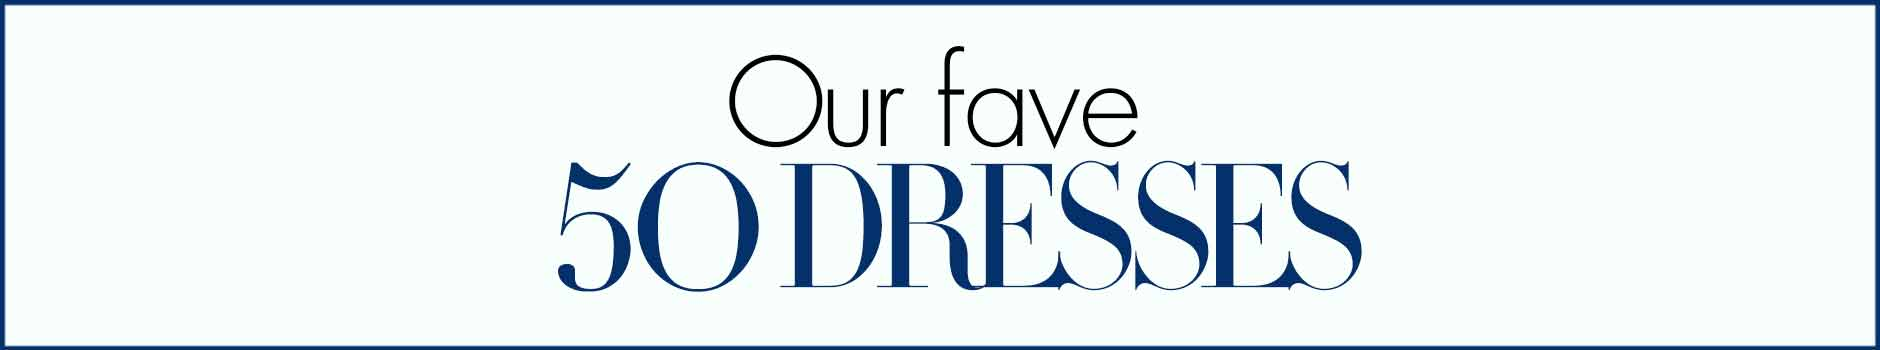 Our Fav 50 Dresses